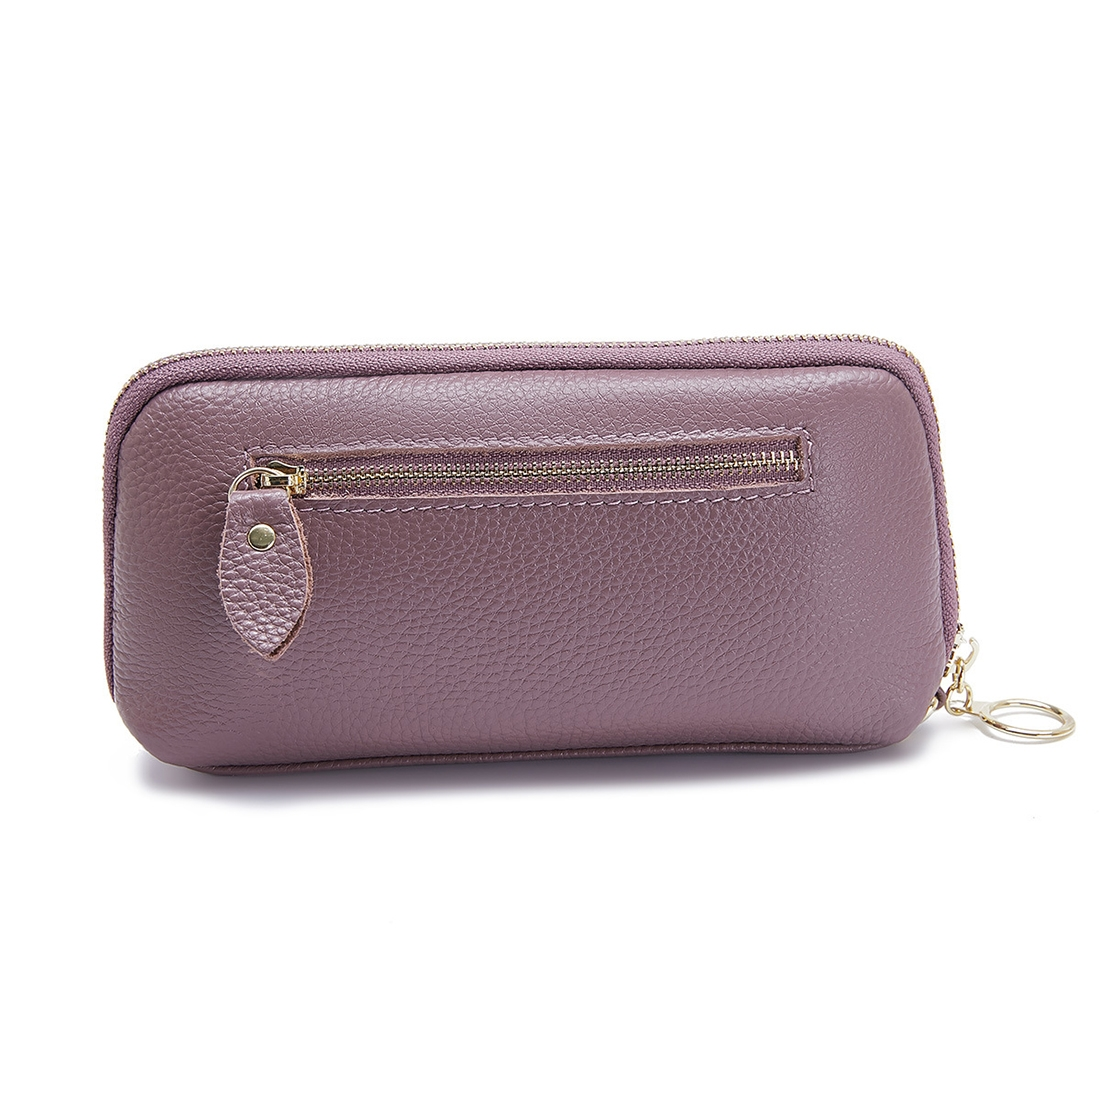 2-Folding Square Genuine Leather Handbag (Purple)